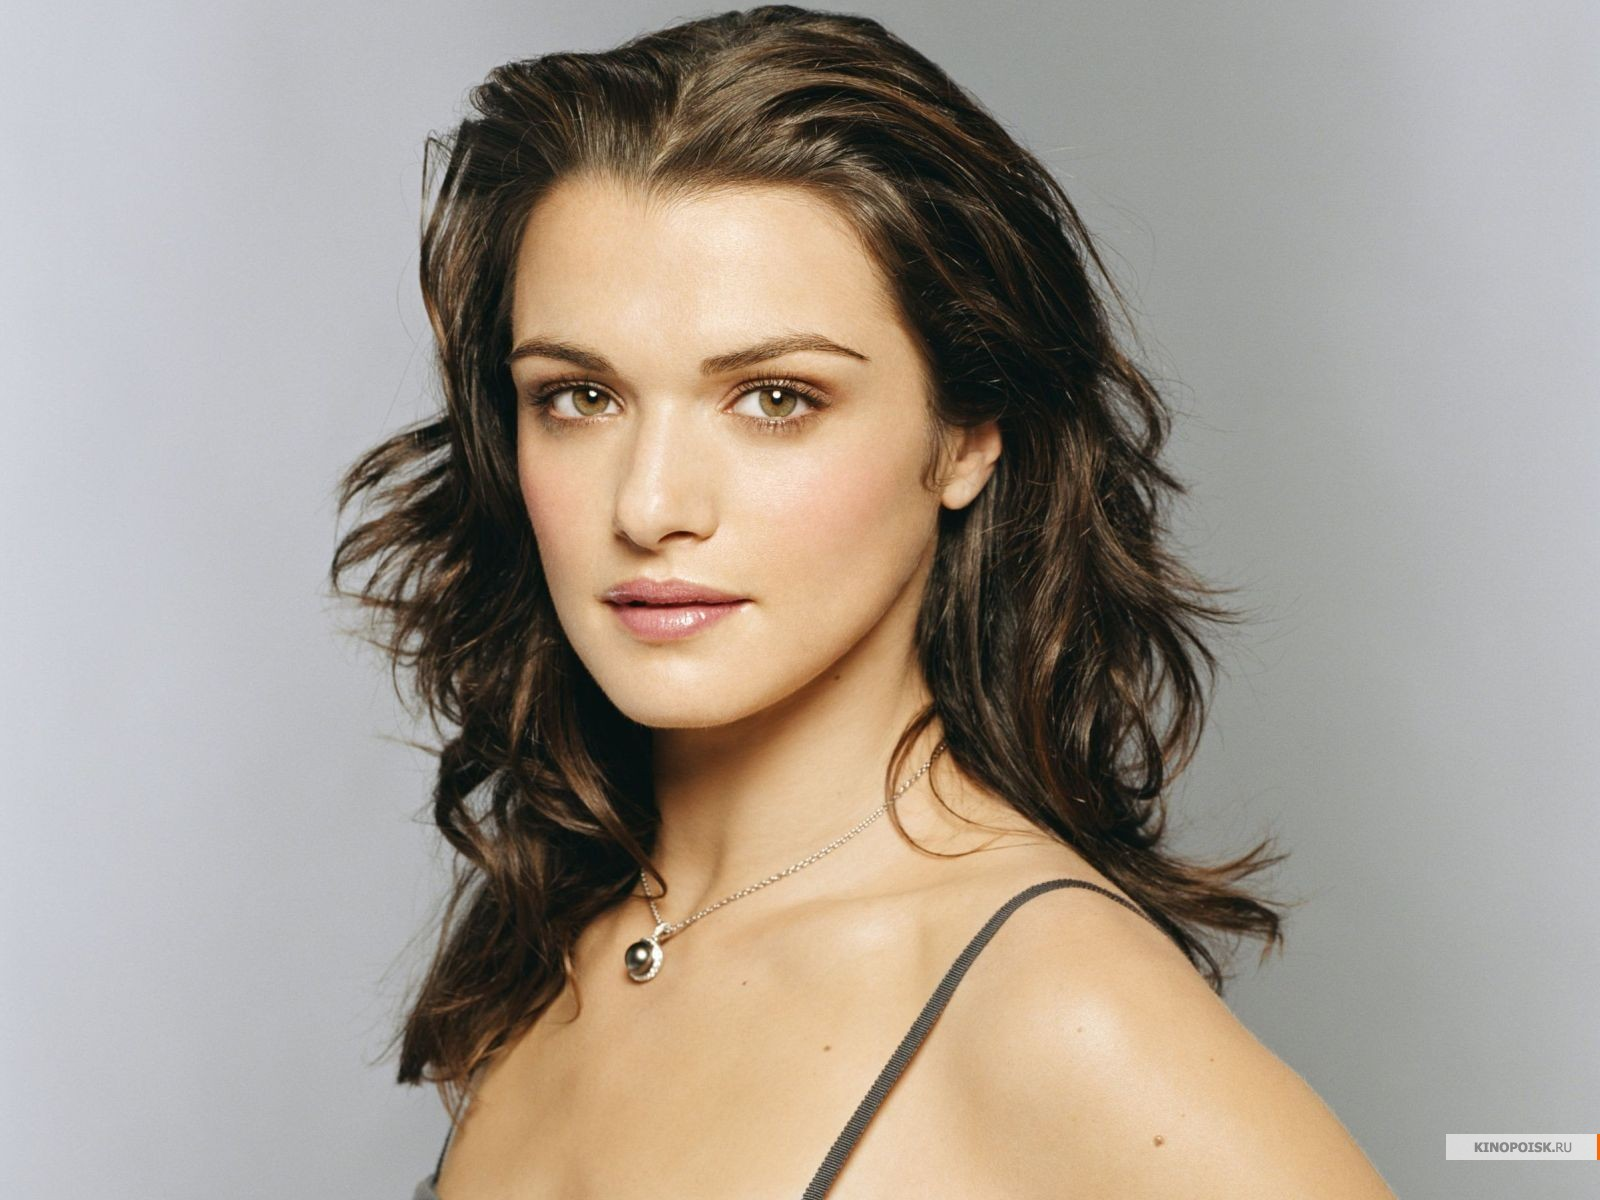 ��� ���� ������ ������ � ������ ������ ������ ������ �� �� ����� ������ Images beautiful Hollywood rachel-weisz-13391.j